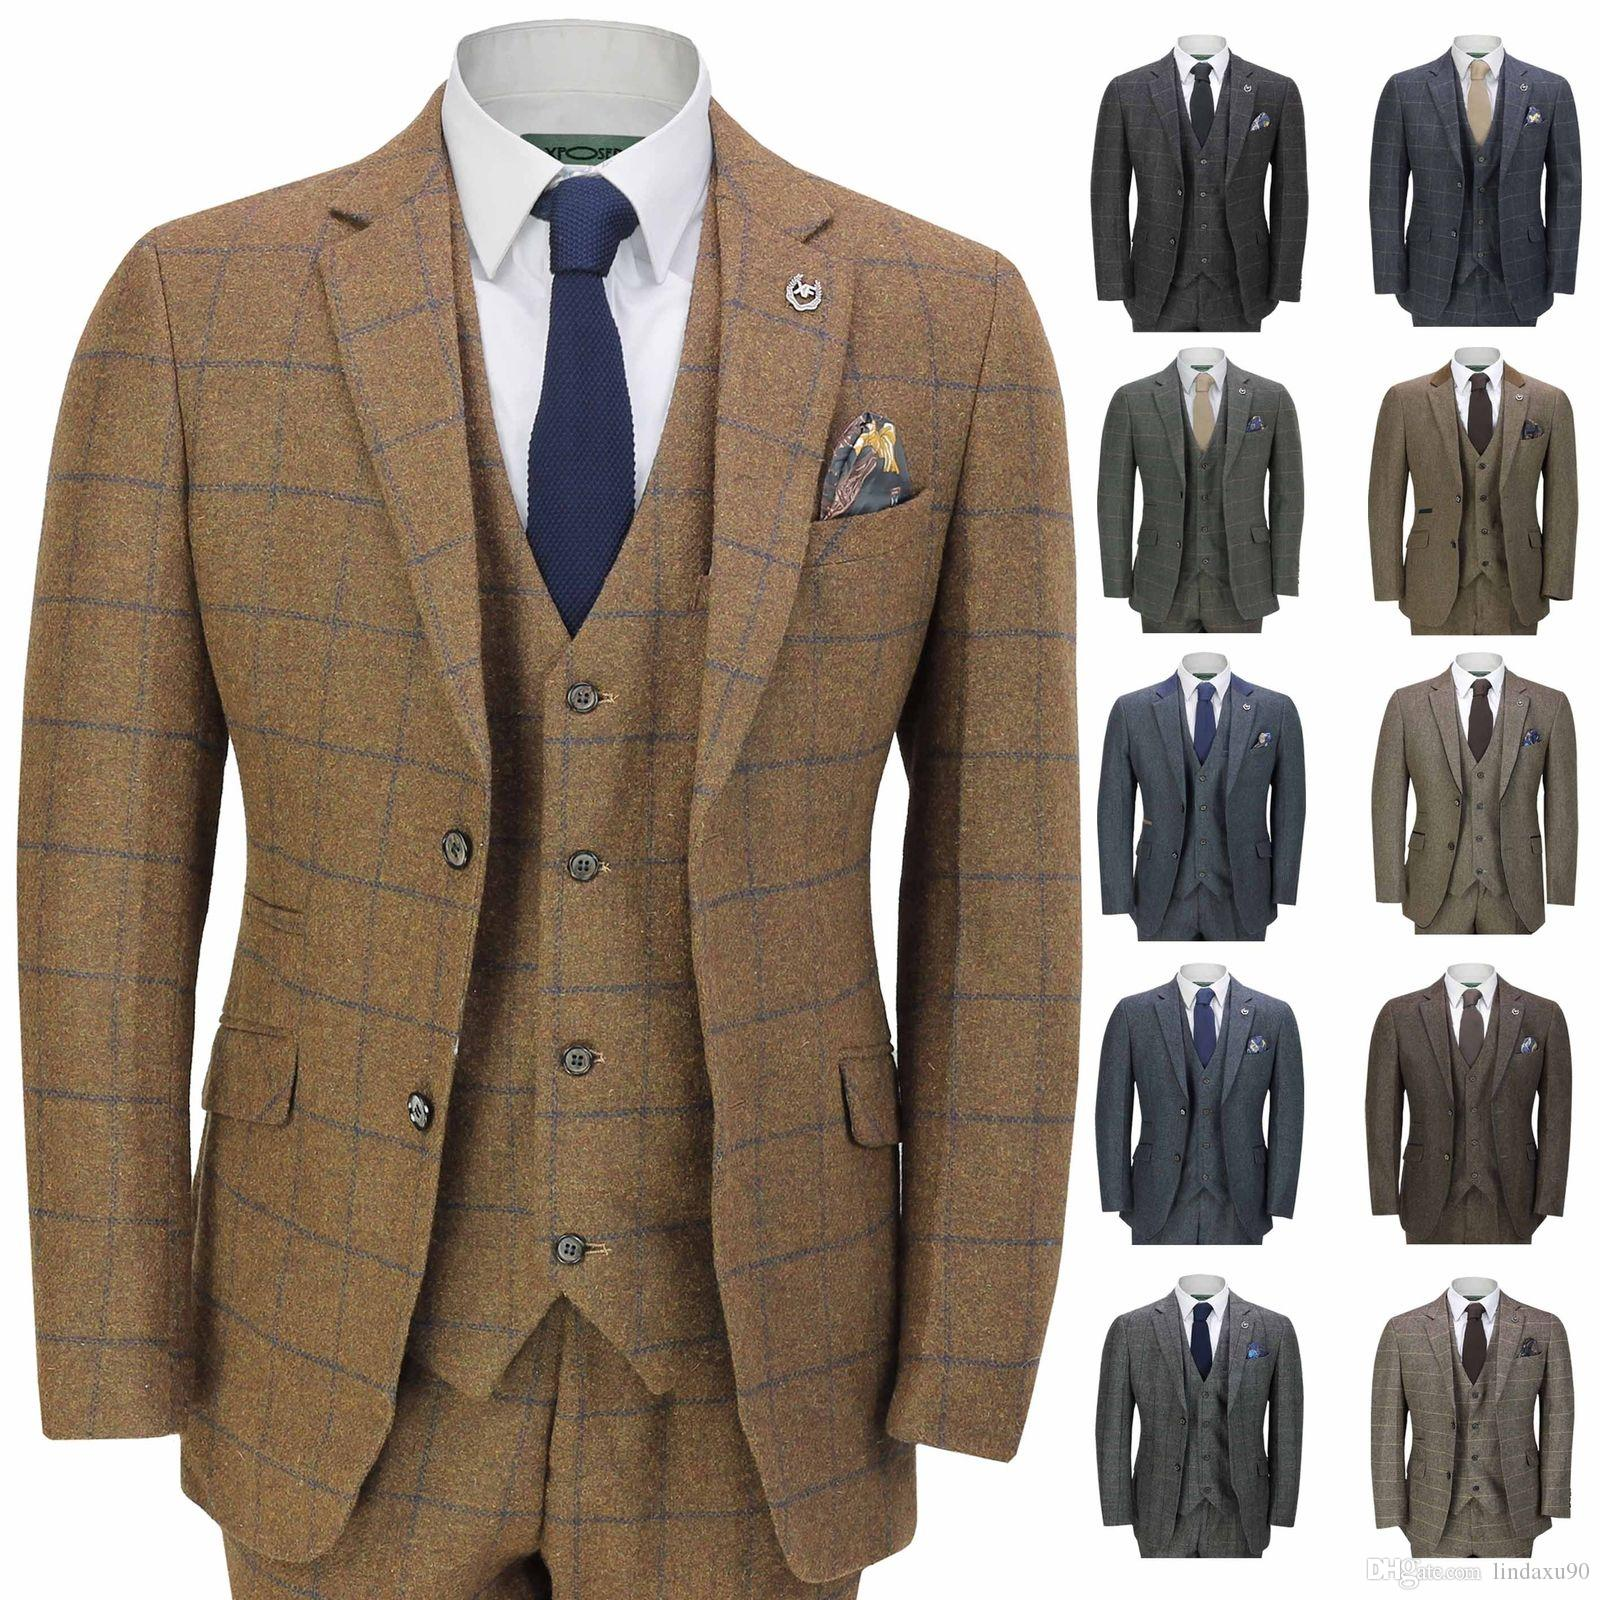 77838f0a5d75 Mens 3 Piece Tweed Suit Herringbone Check Retro Peaky Blinders Tailored Fit  Best Man Suits(Jacket+Pants+vest) Hot Sale